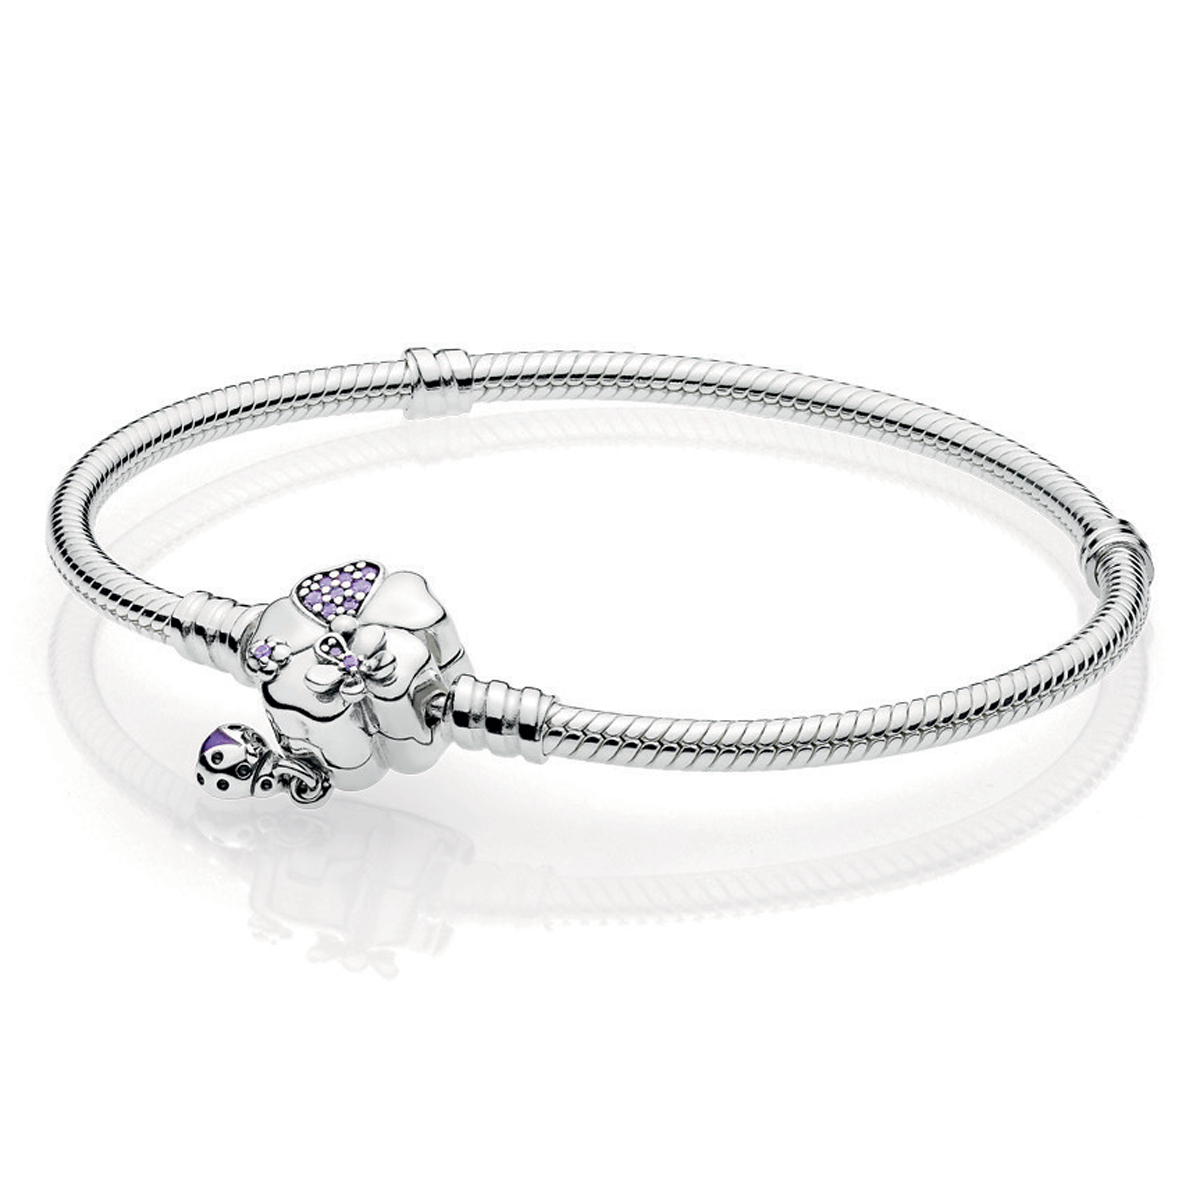 bangles shop category charm bangle sveaas jewellery tilly silver sterling